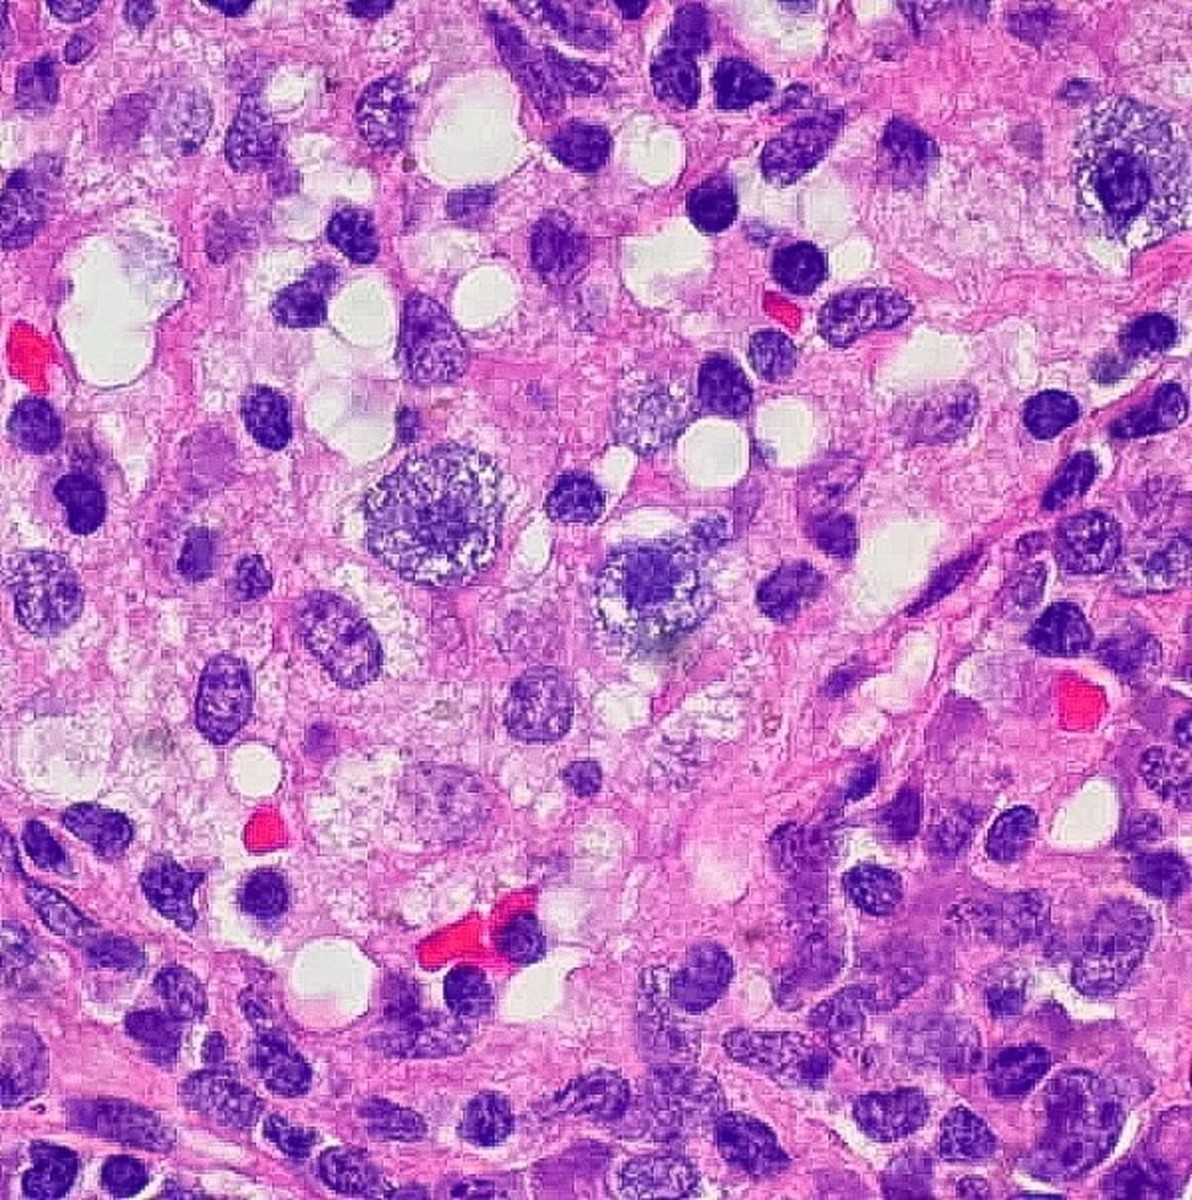 Mast cells (the granular ones with a large nucleus) in a condition called sinus histiocytosis